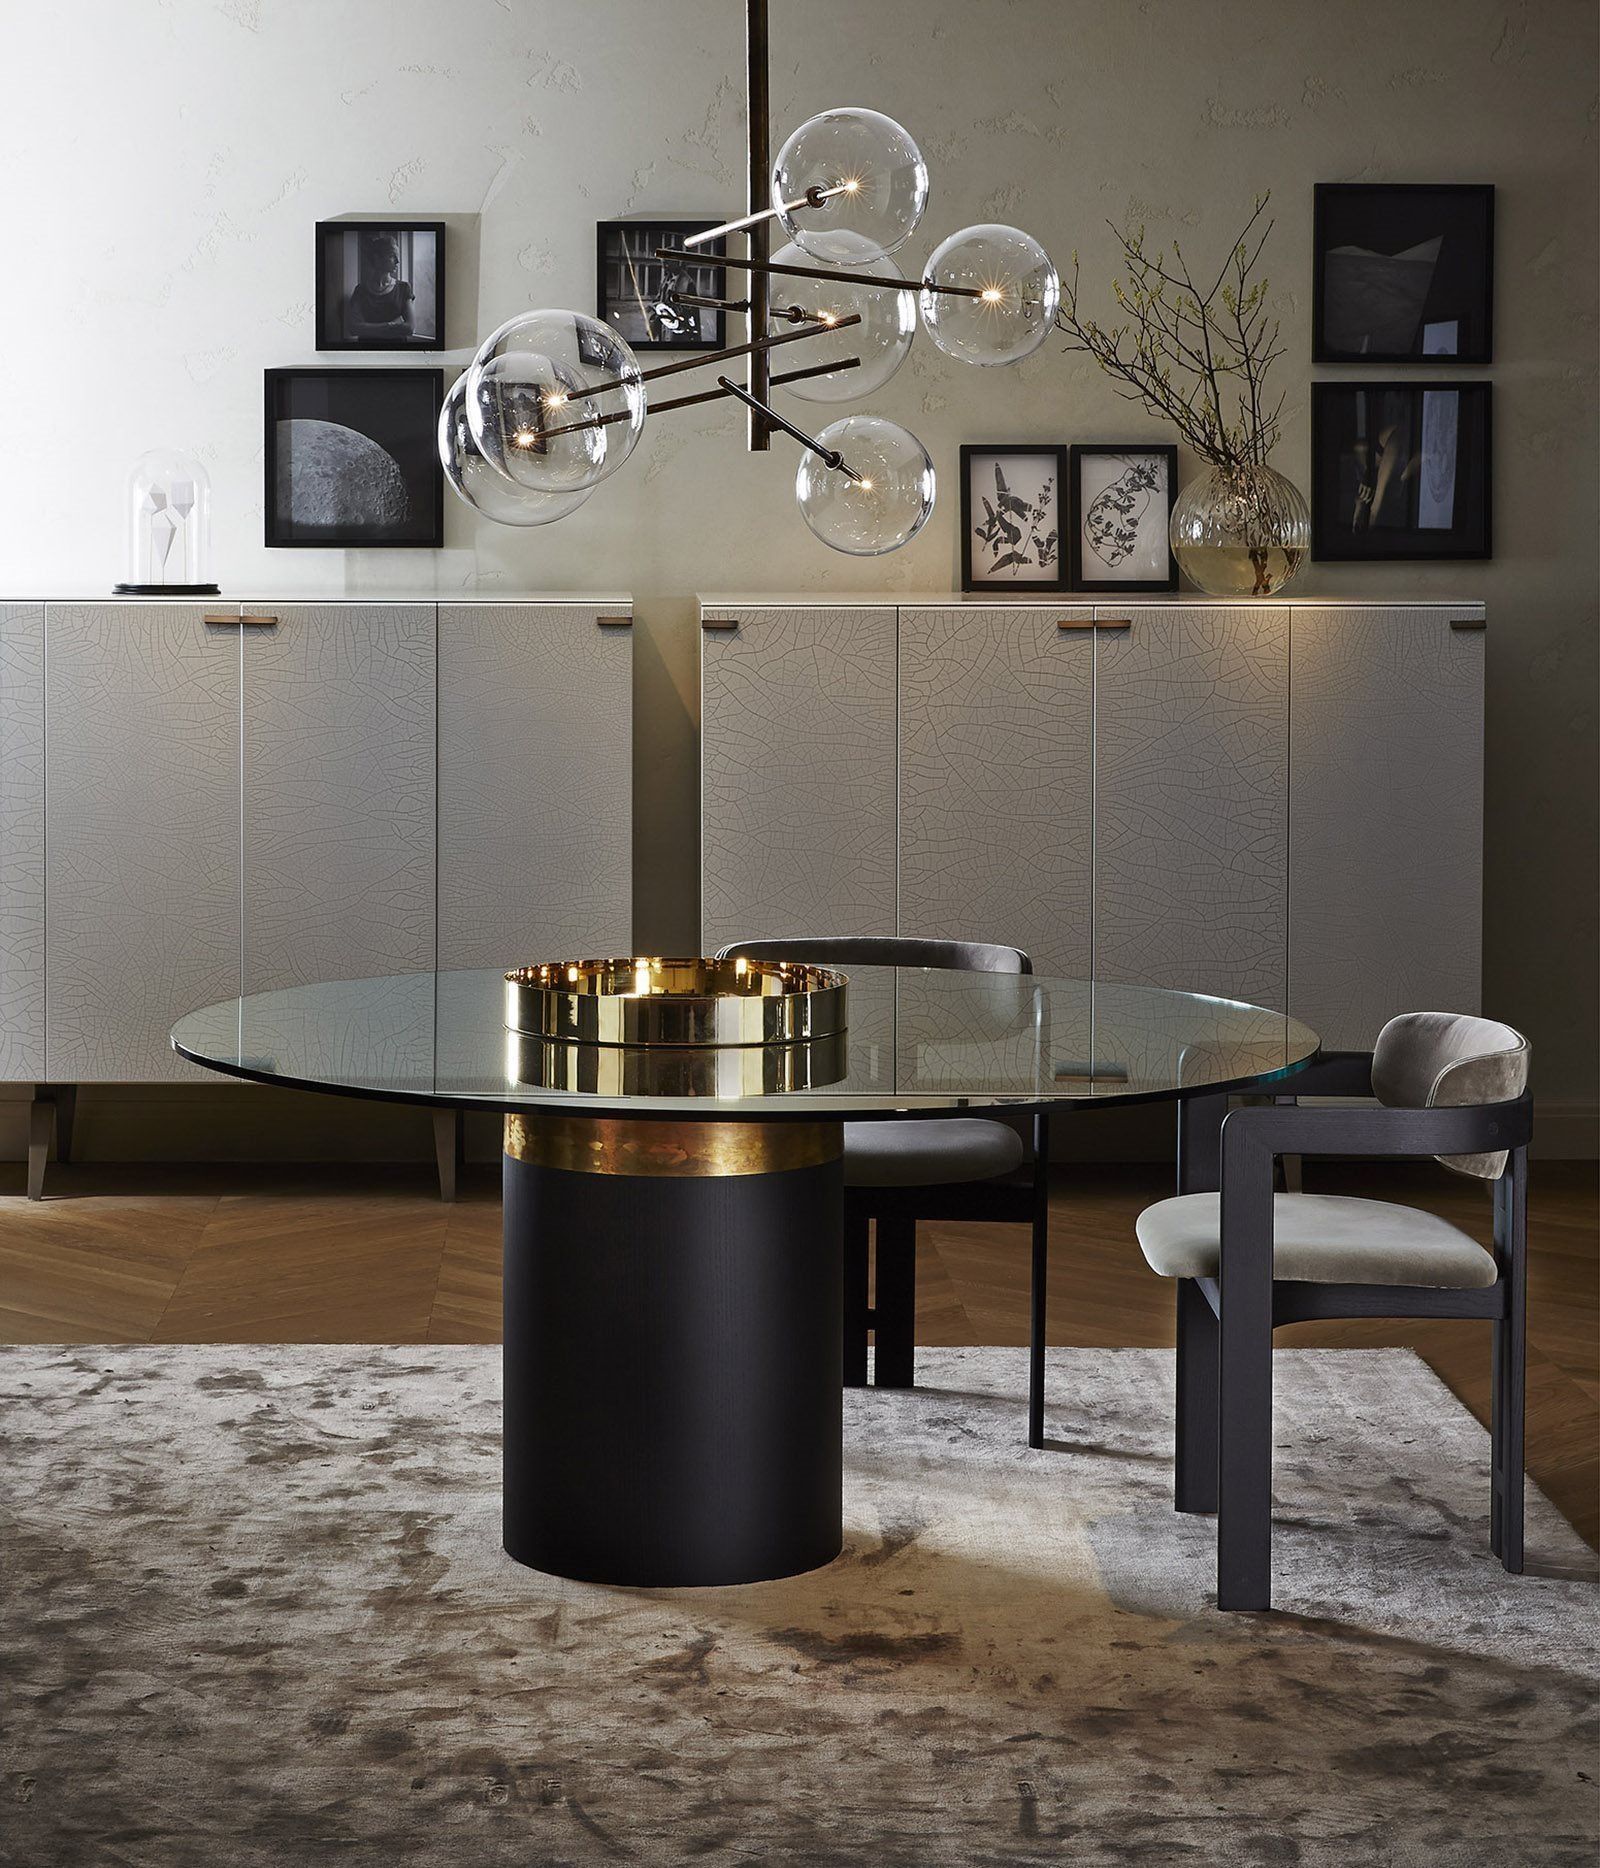 Gallotti radice rho fiera milano 2016 salone del mobile for Fiera milano 2016